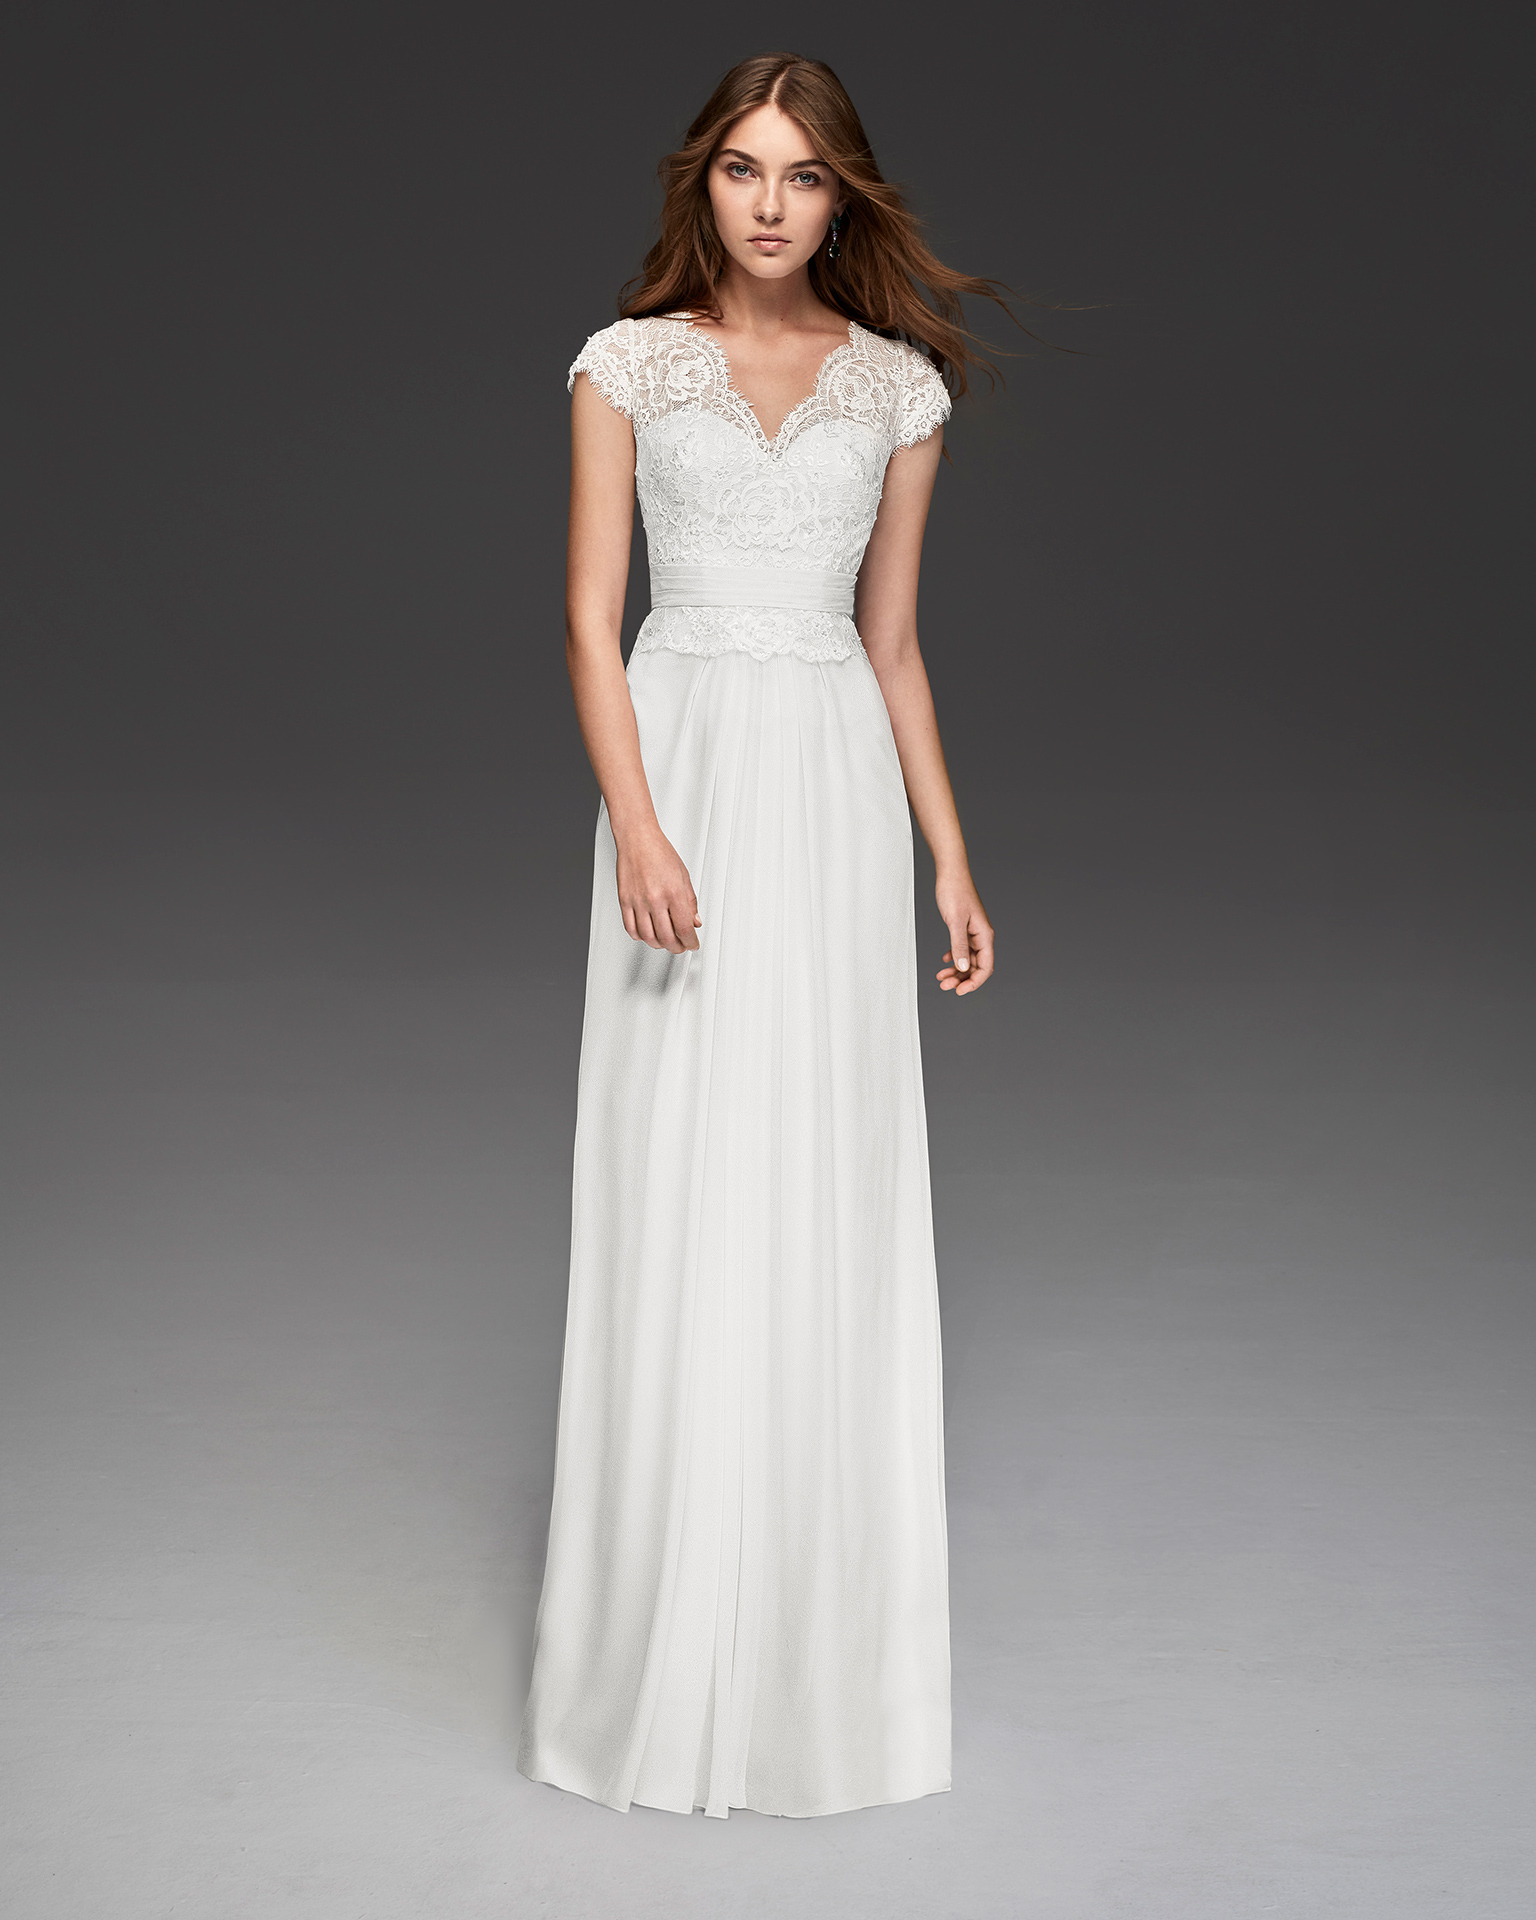 Boho-style beaded crepe Georgette wedding dress with short sleeves and V-neckline.